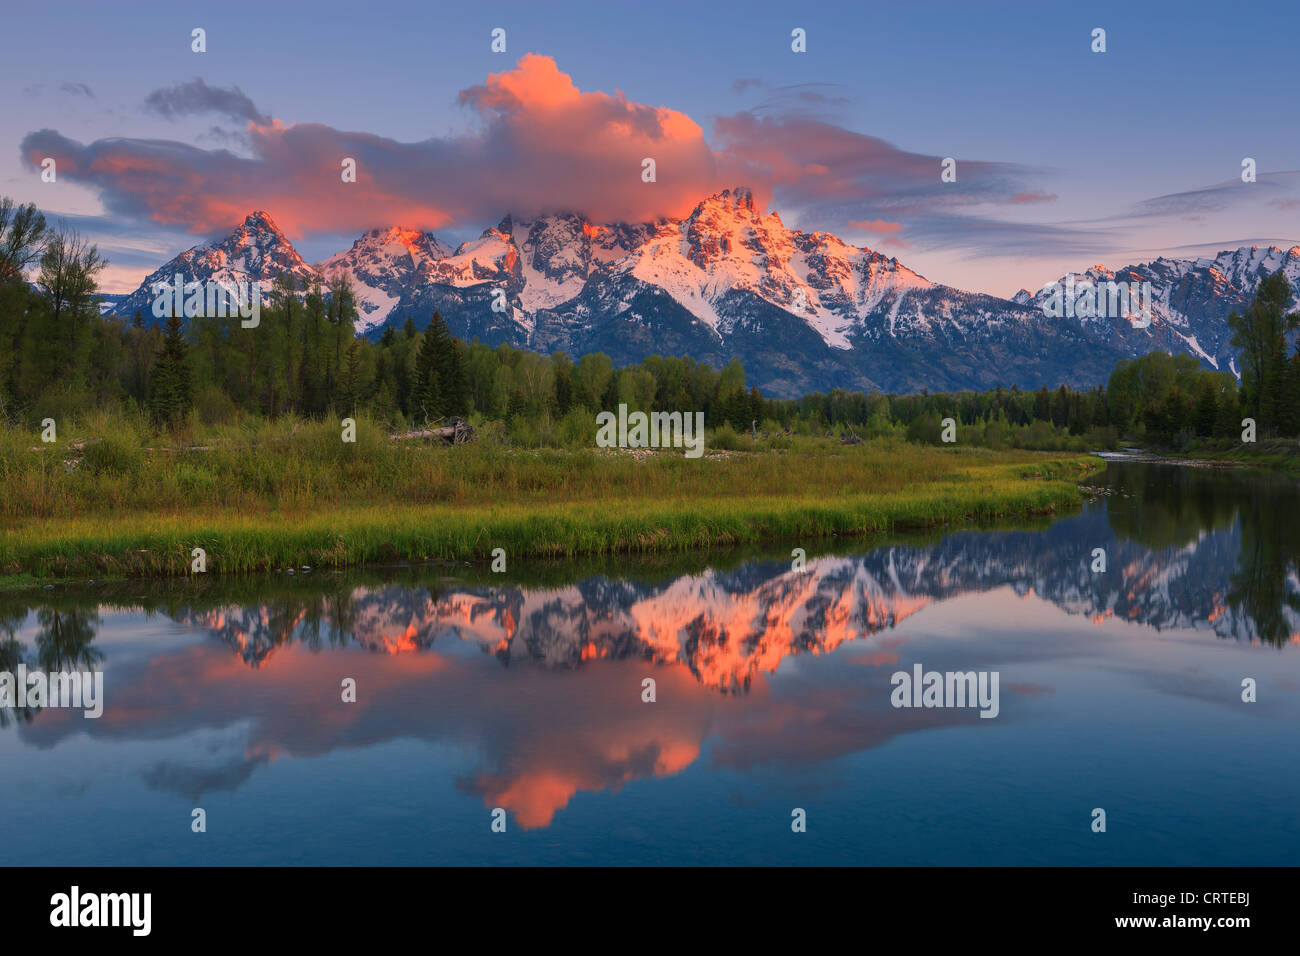 Sunrise a Schwabacher in atterraggio a Grand Teton National Park in Wyoming, STATI UNITI D'AMERICA Immagini Stock